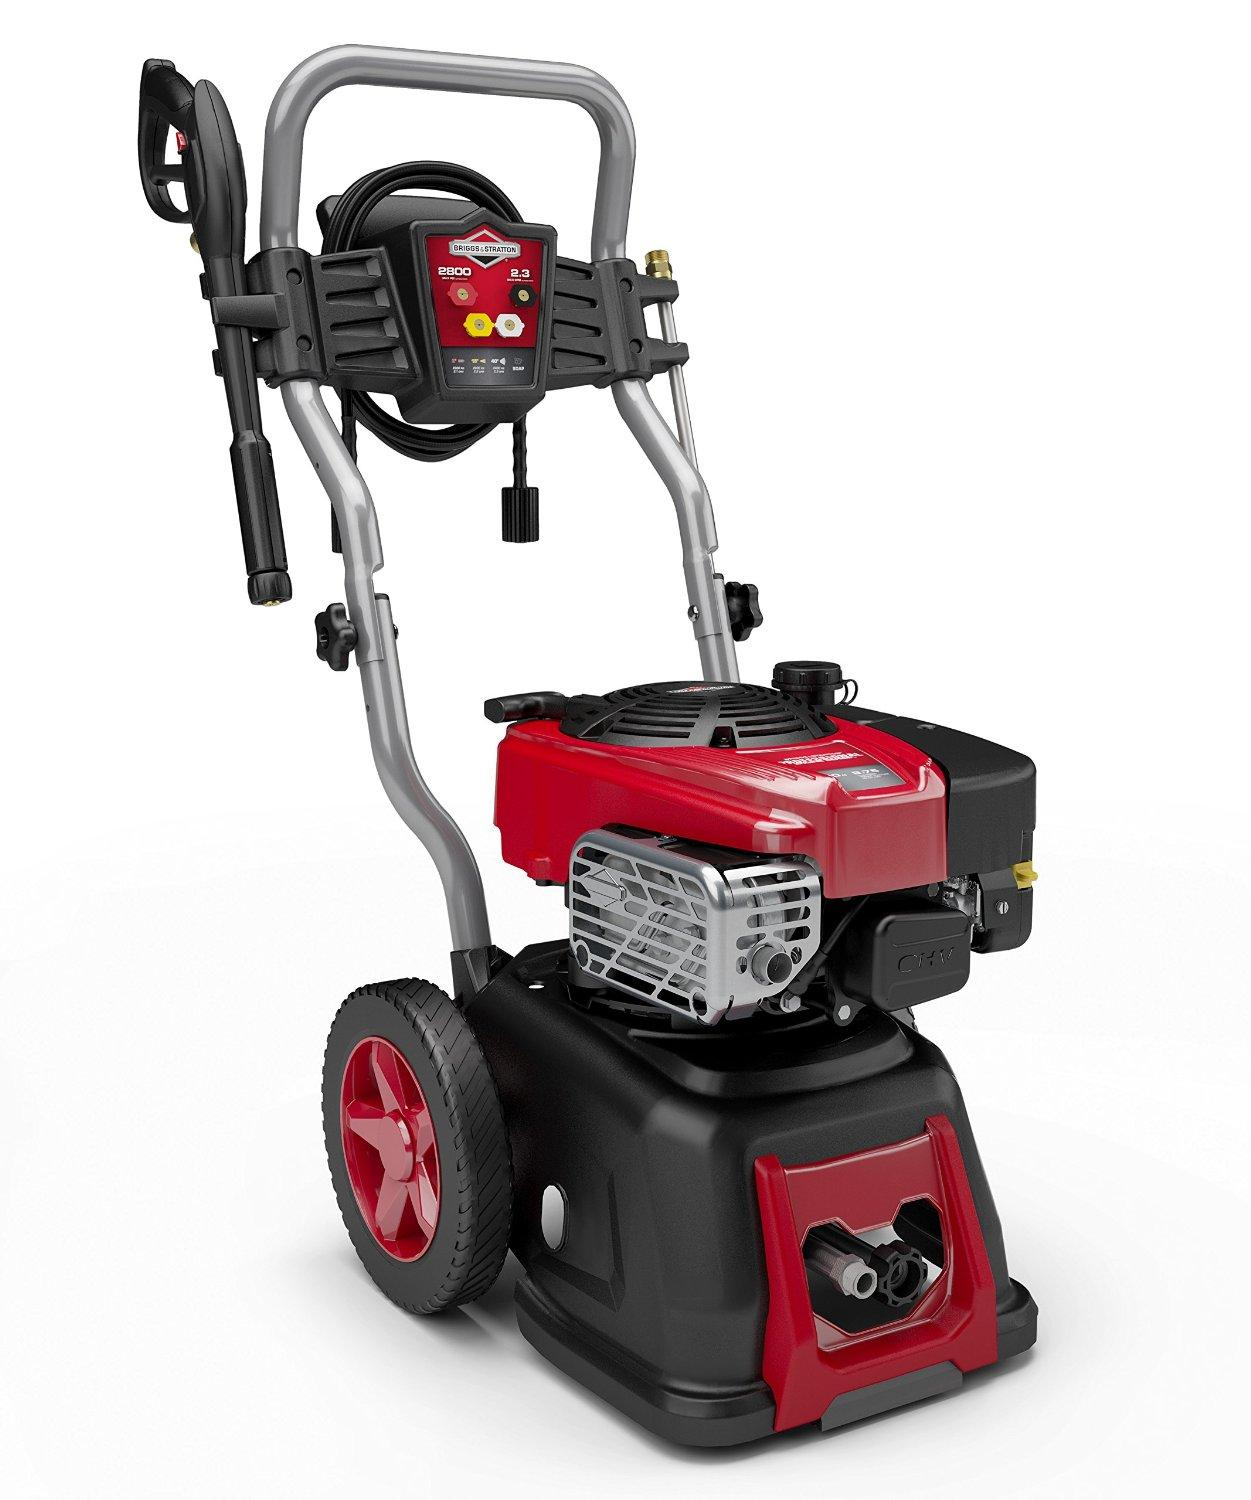 Briggs And Stratton Power Products 9777 2: Amazon.com: Briggs & Stratton 20593 2.3-GPM 2800-PSI Gas